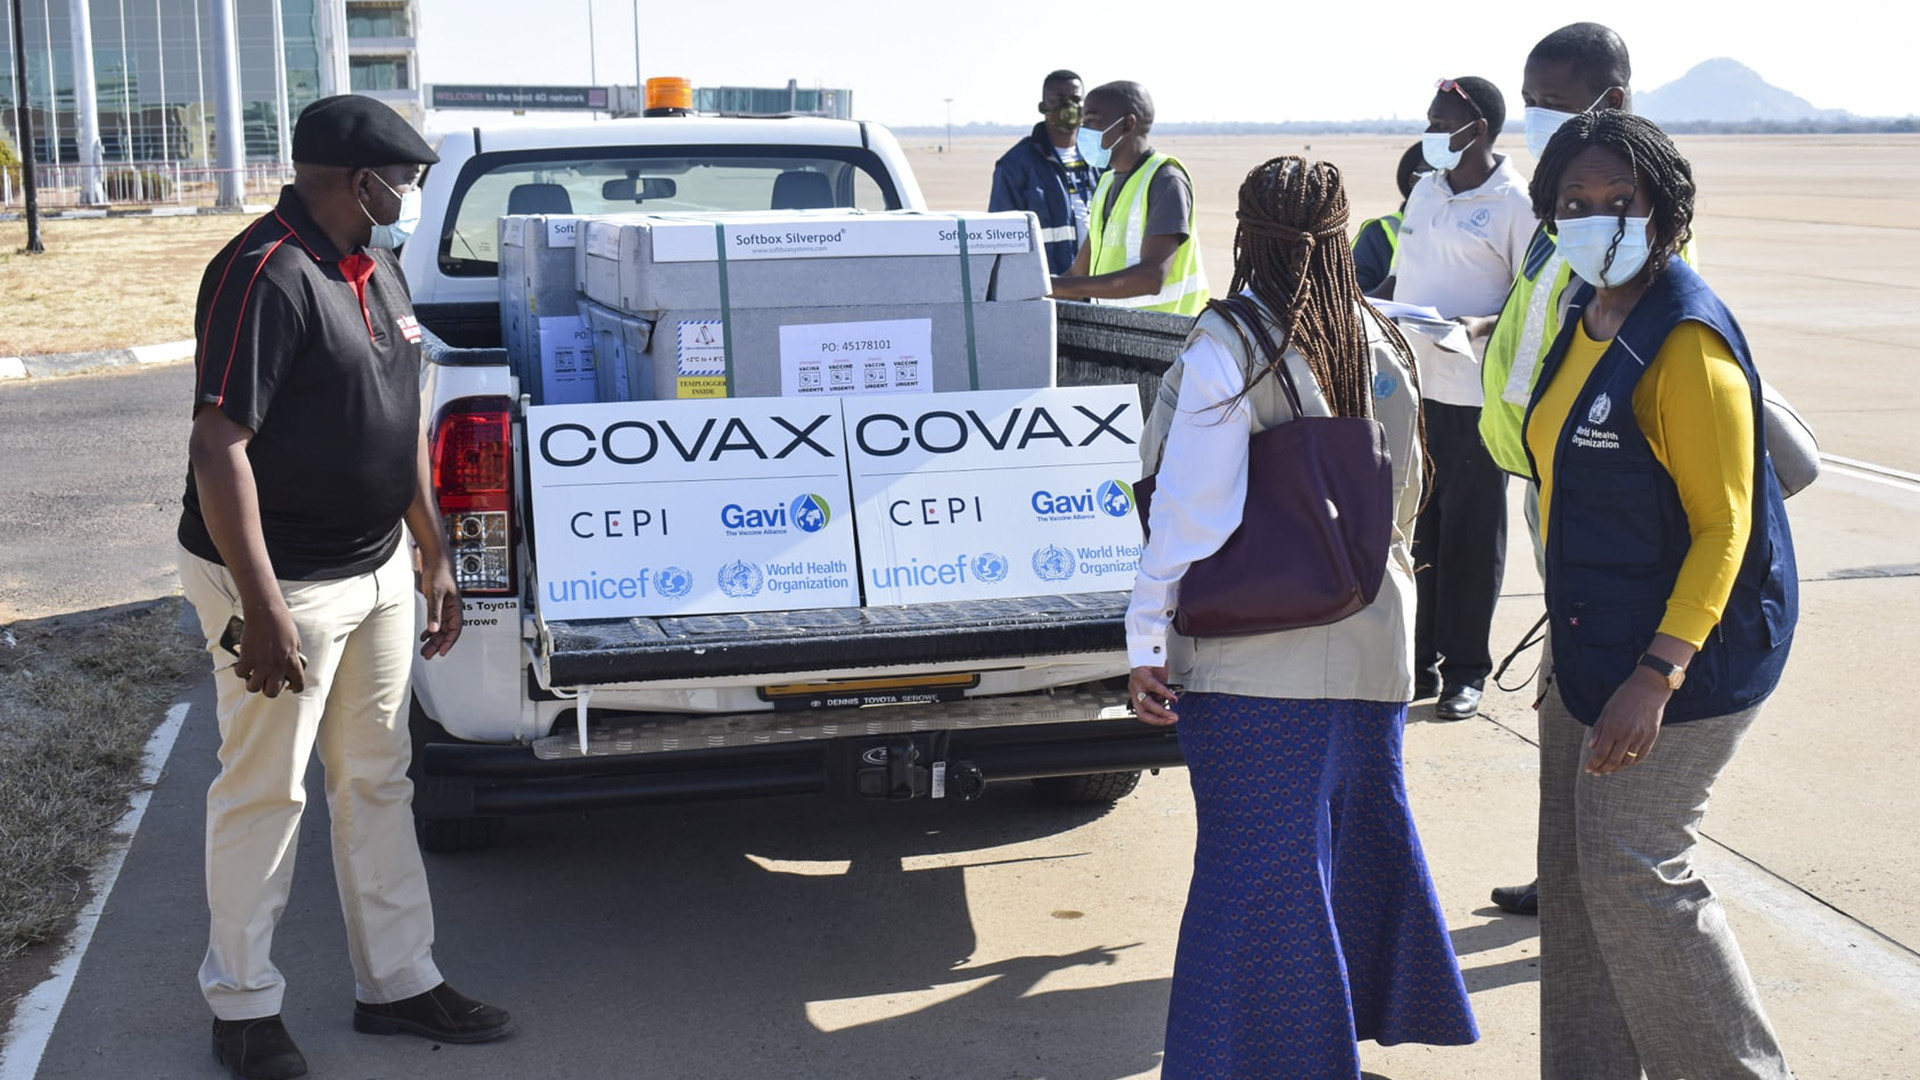 Botswanan President Terms Covid-19 Covax Facility A 'Scam'